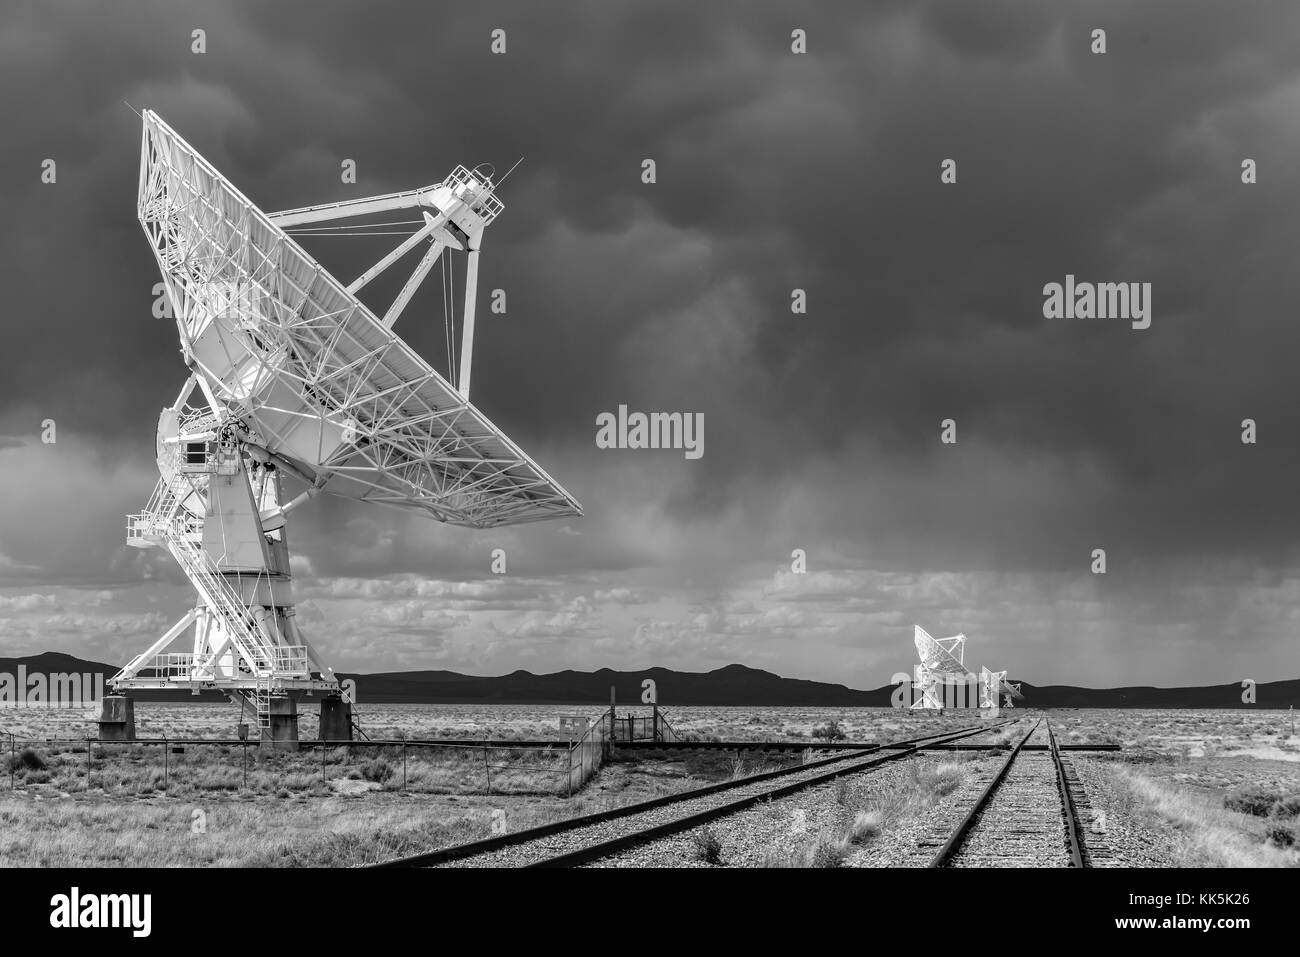 The Karl G. Jansky Very Large Array (VLA) is a radio astronomy observatory located on the Plains of San Agustin - Stock Image